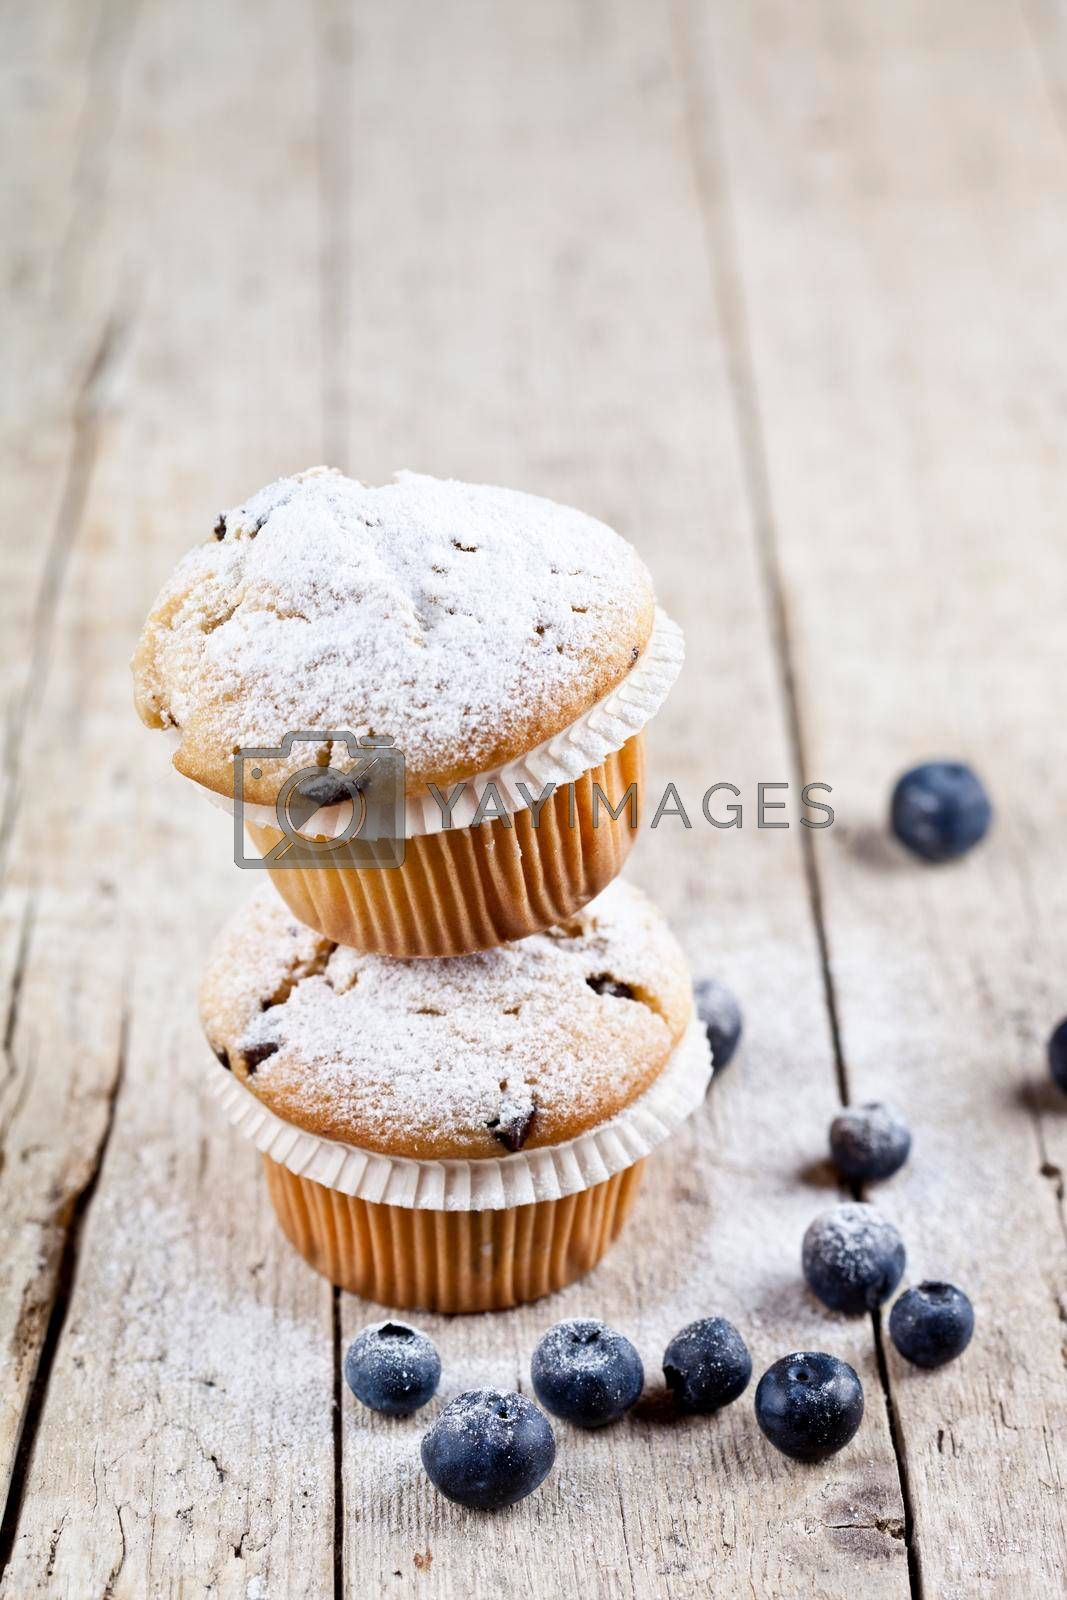 Two fresh homemade muffins with blueberries on rustic wooden table background.